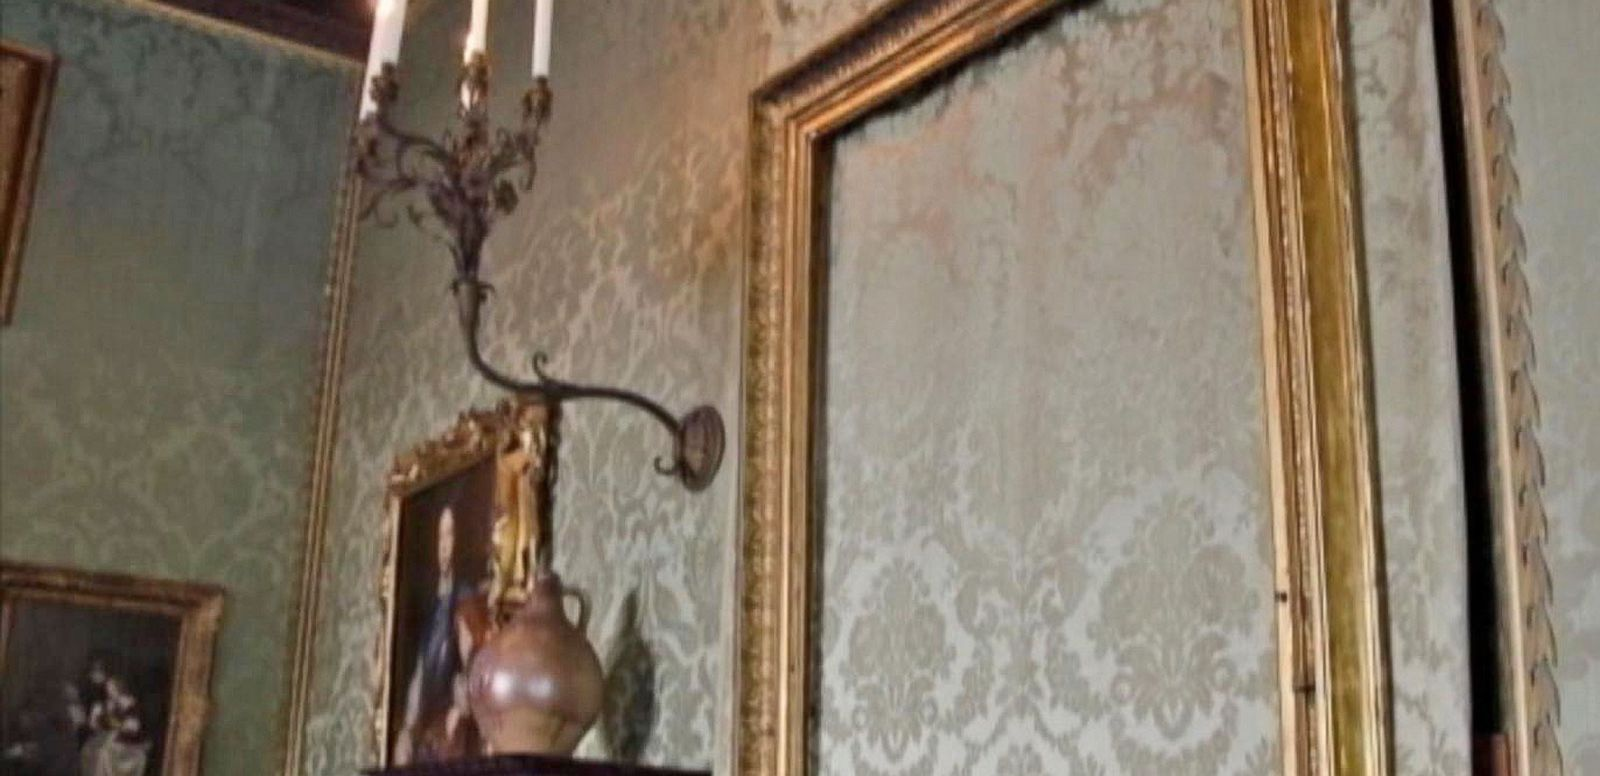 VIDEO: FBI Goes Digging in Stolen Art Investigation